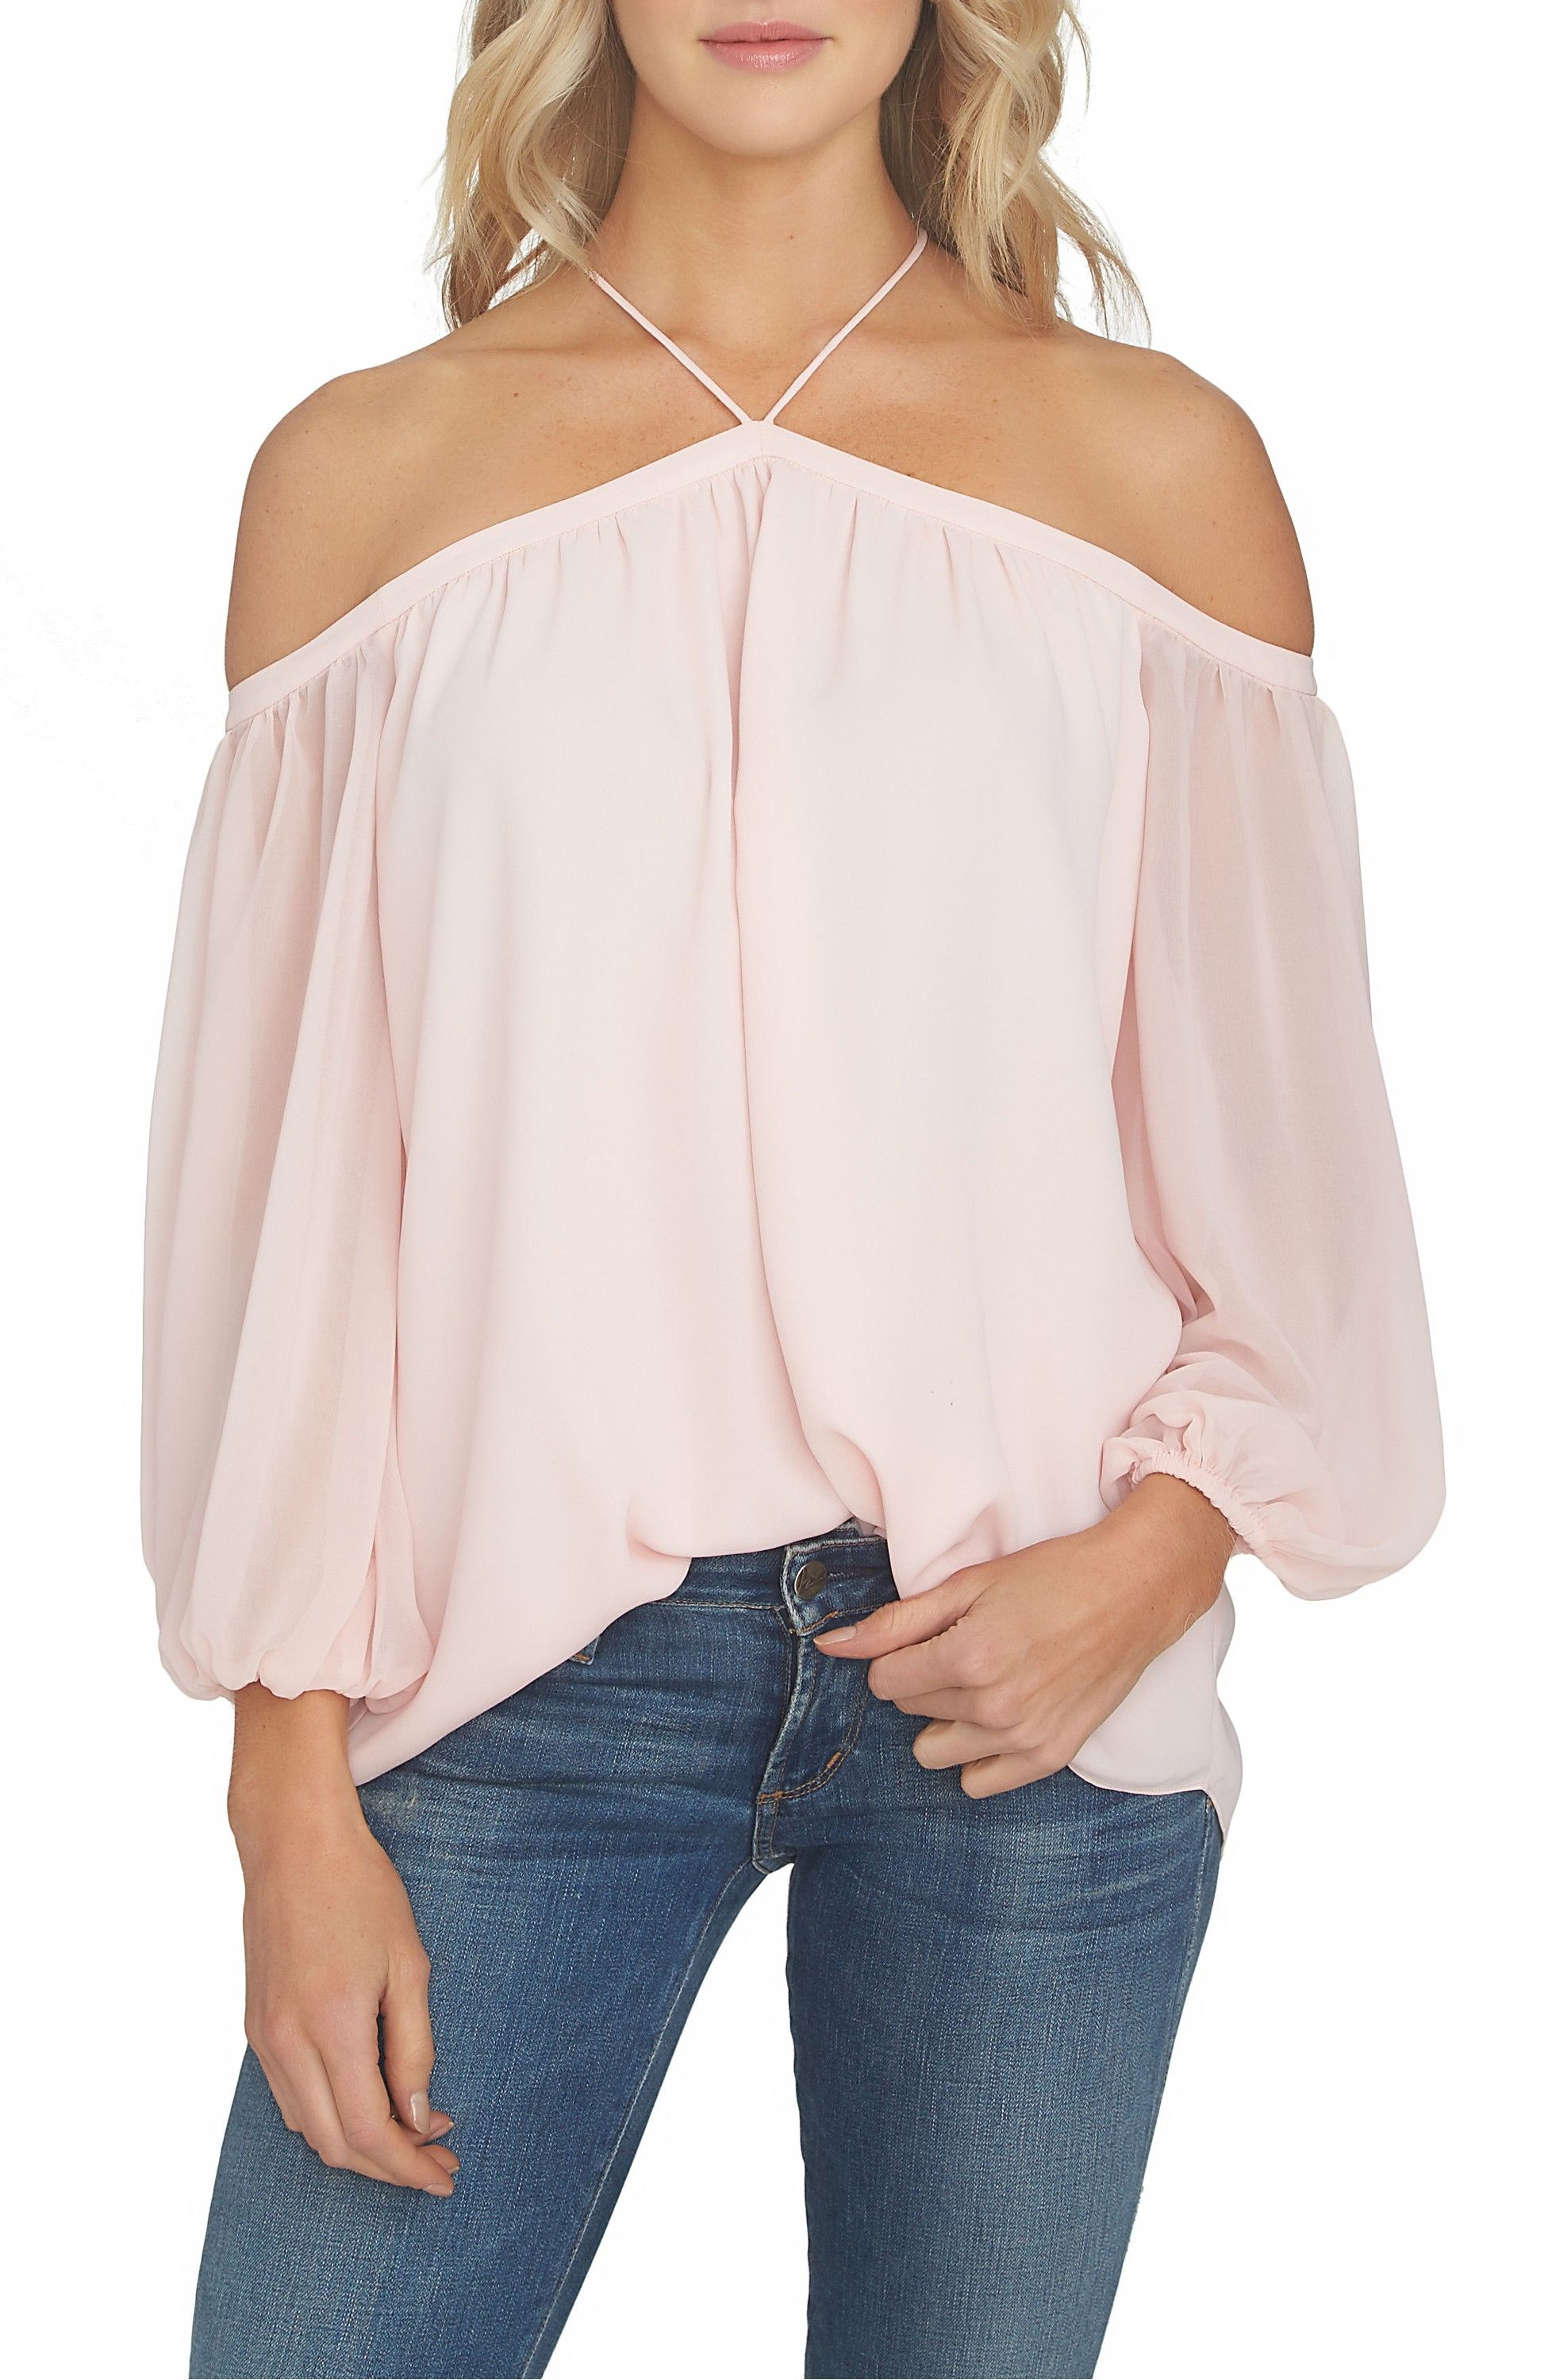 Main Image - 1.STATE Off the Shoulder Chiffon Blouse